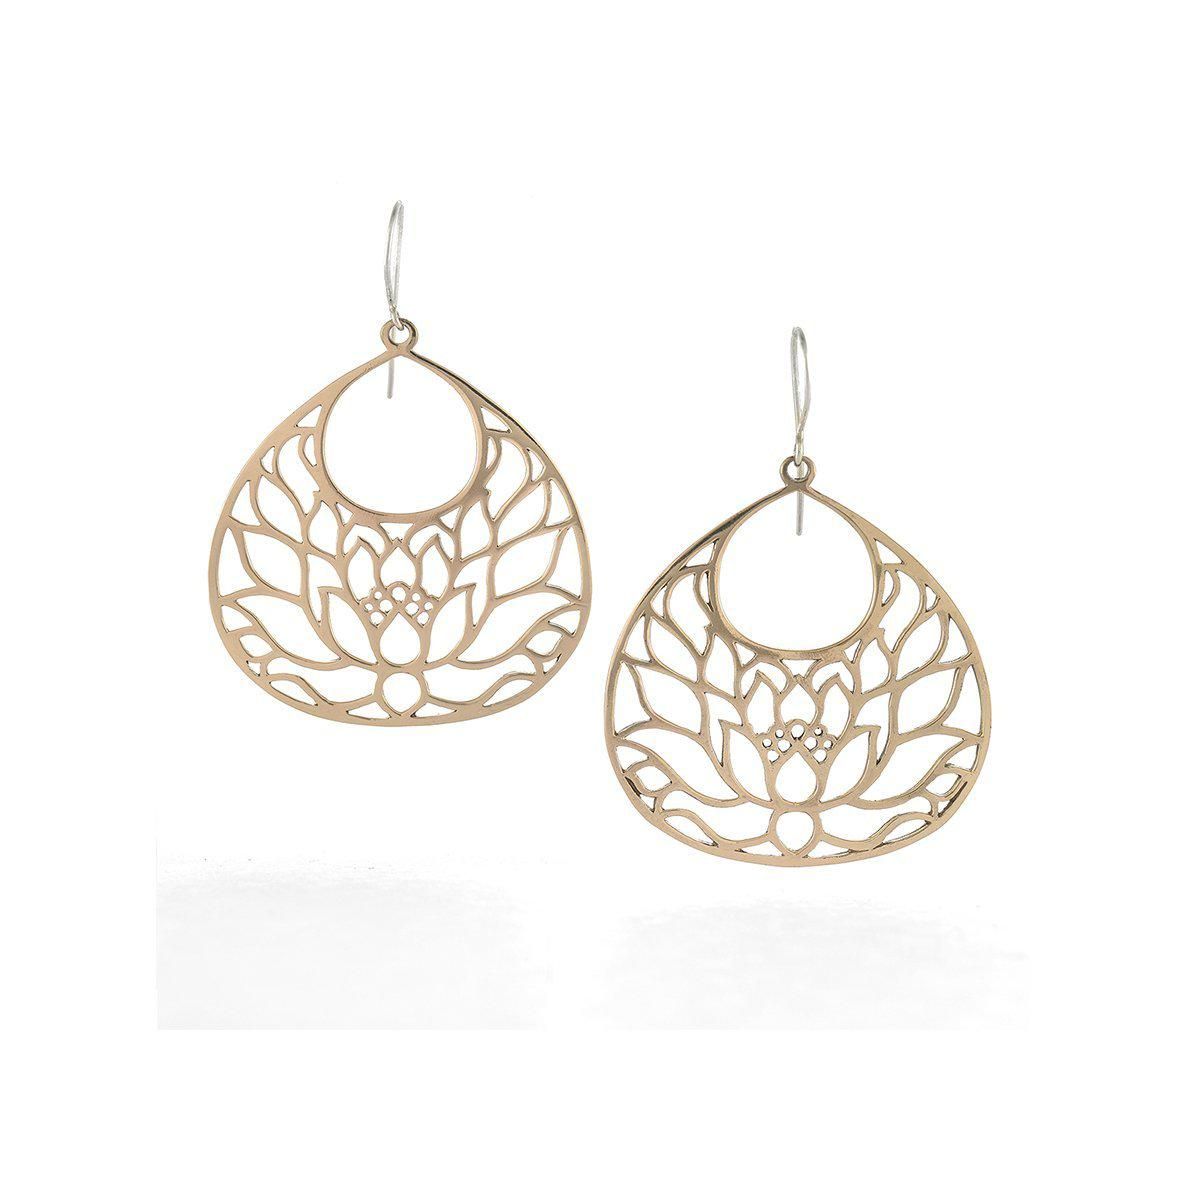 House of Alaia Large Lotus Flower Earrings In Bronze vLMFvlo3x